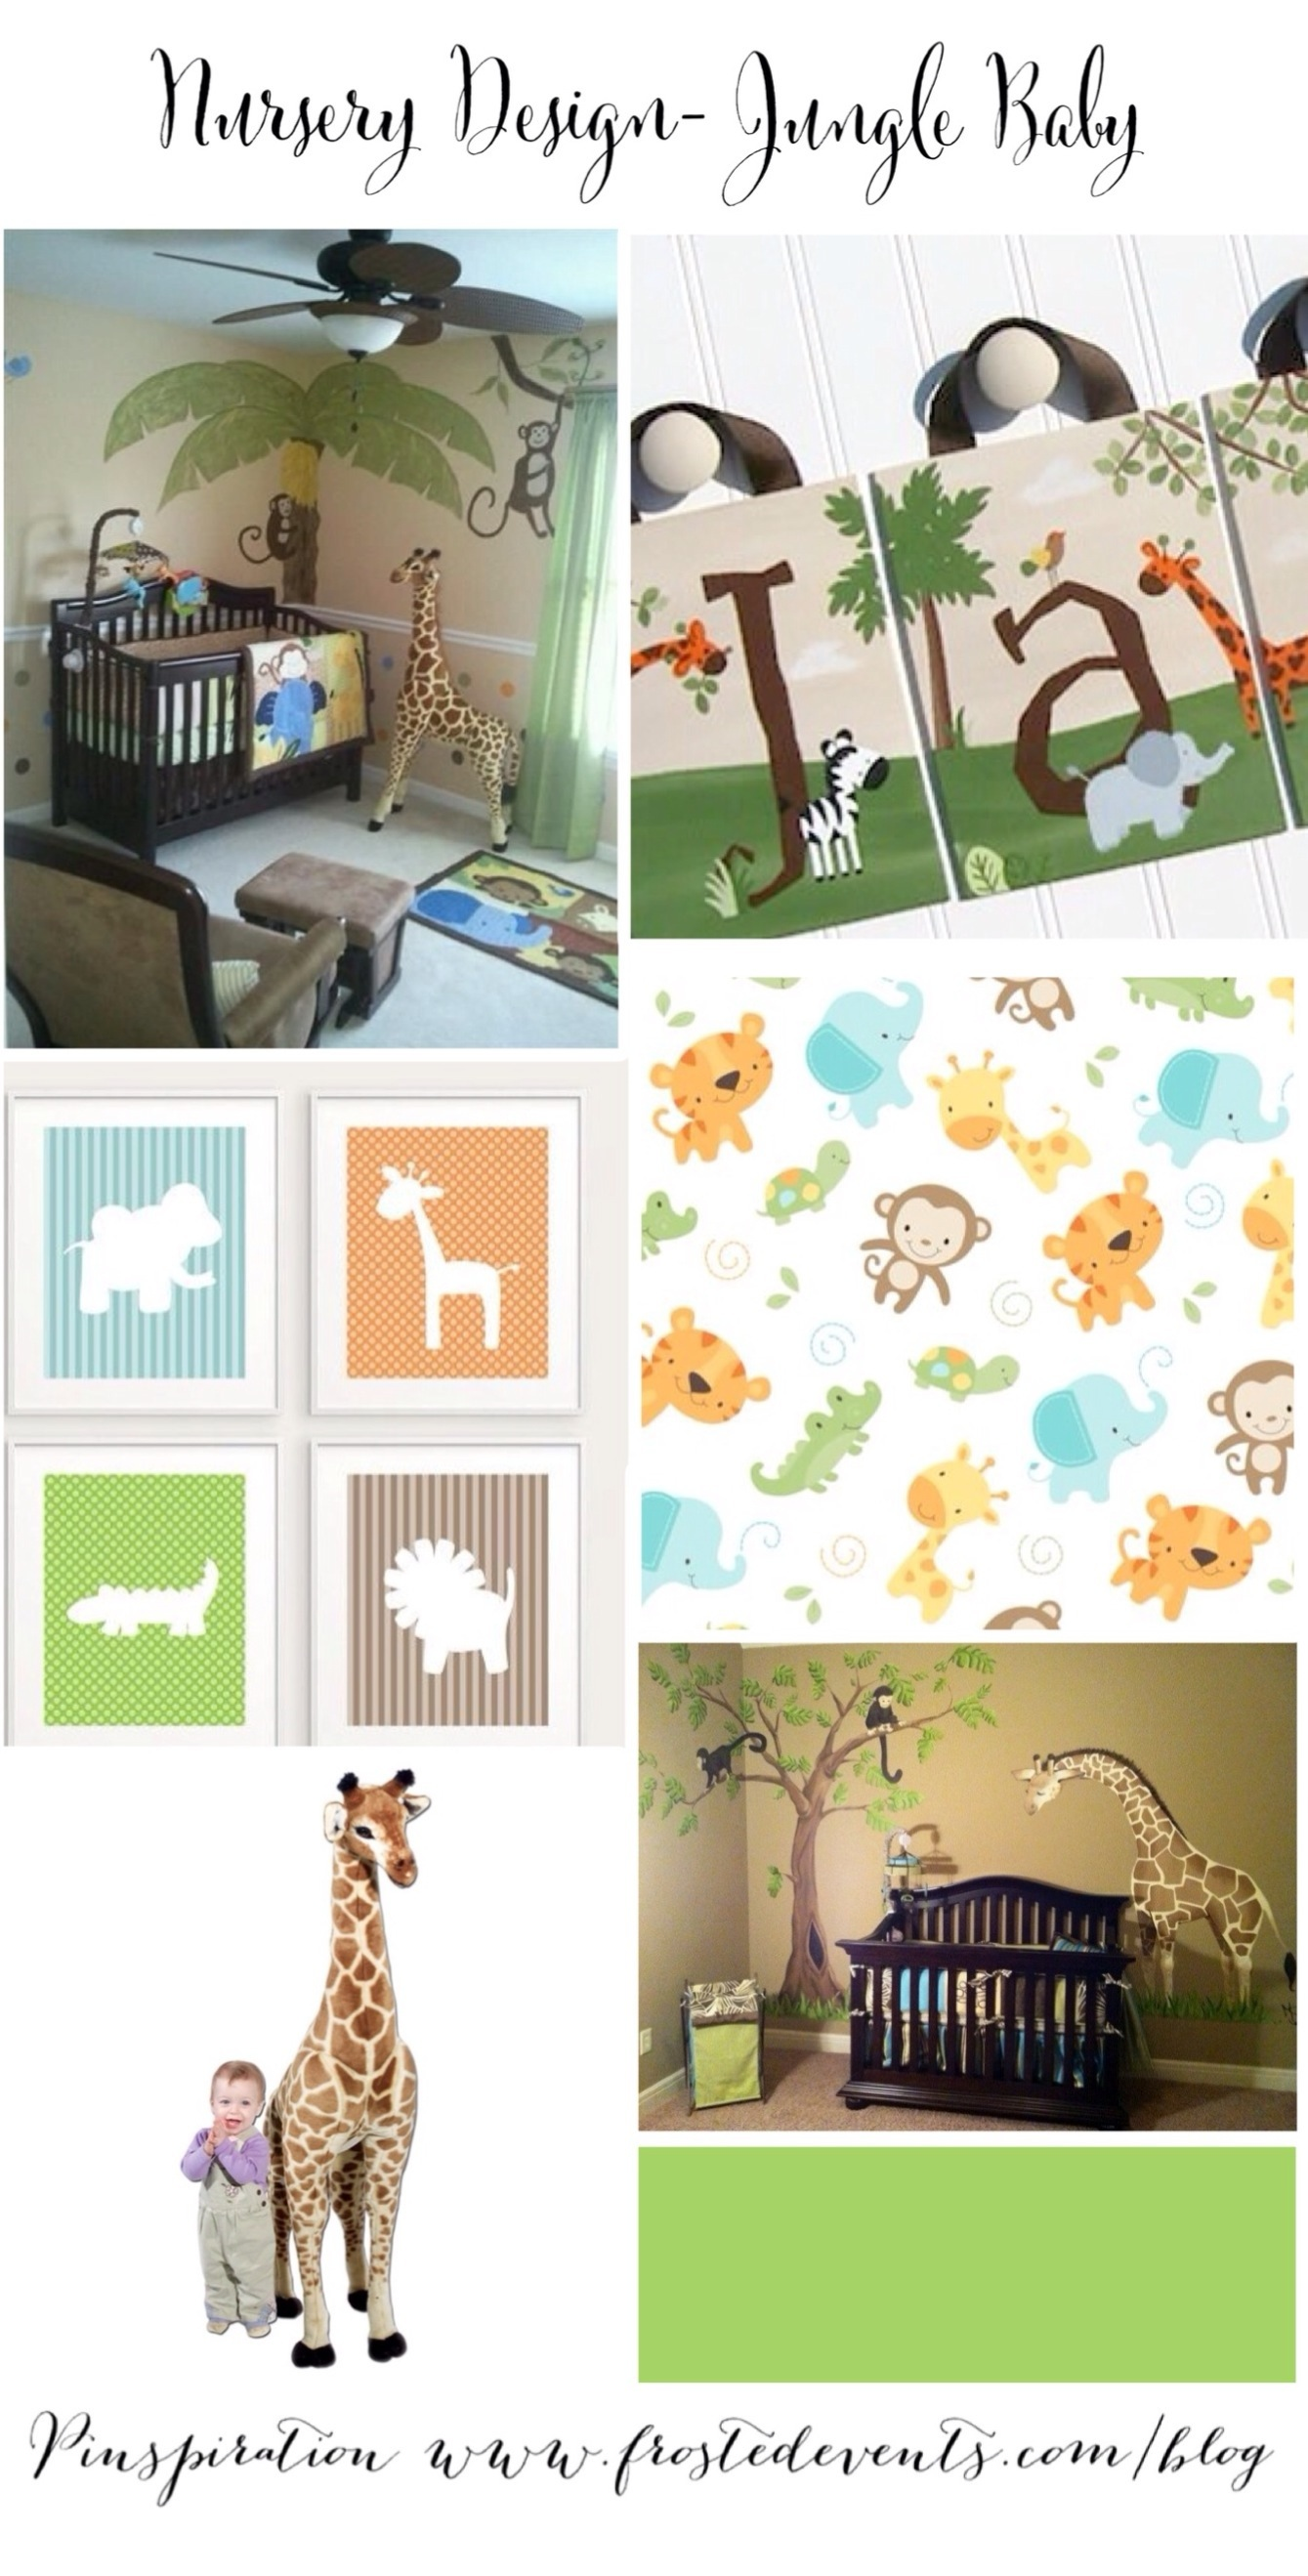 Nursery Design Jungle Baby www.frostedevents.com Ideas & Inspiration